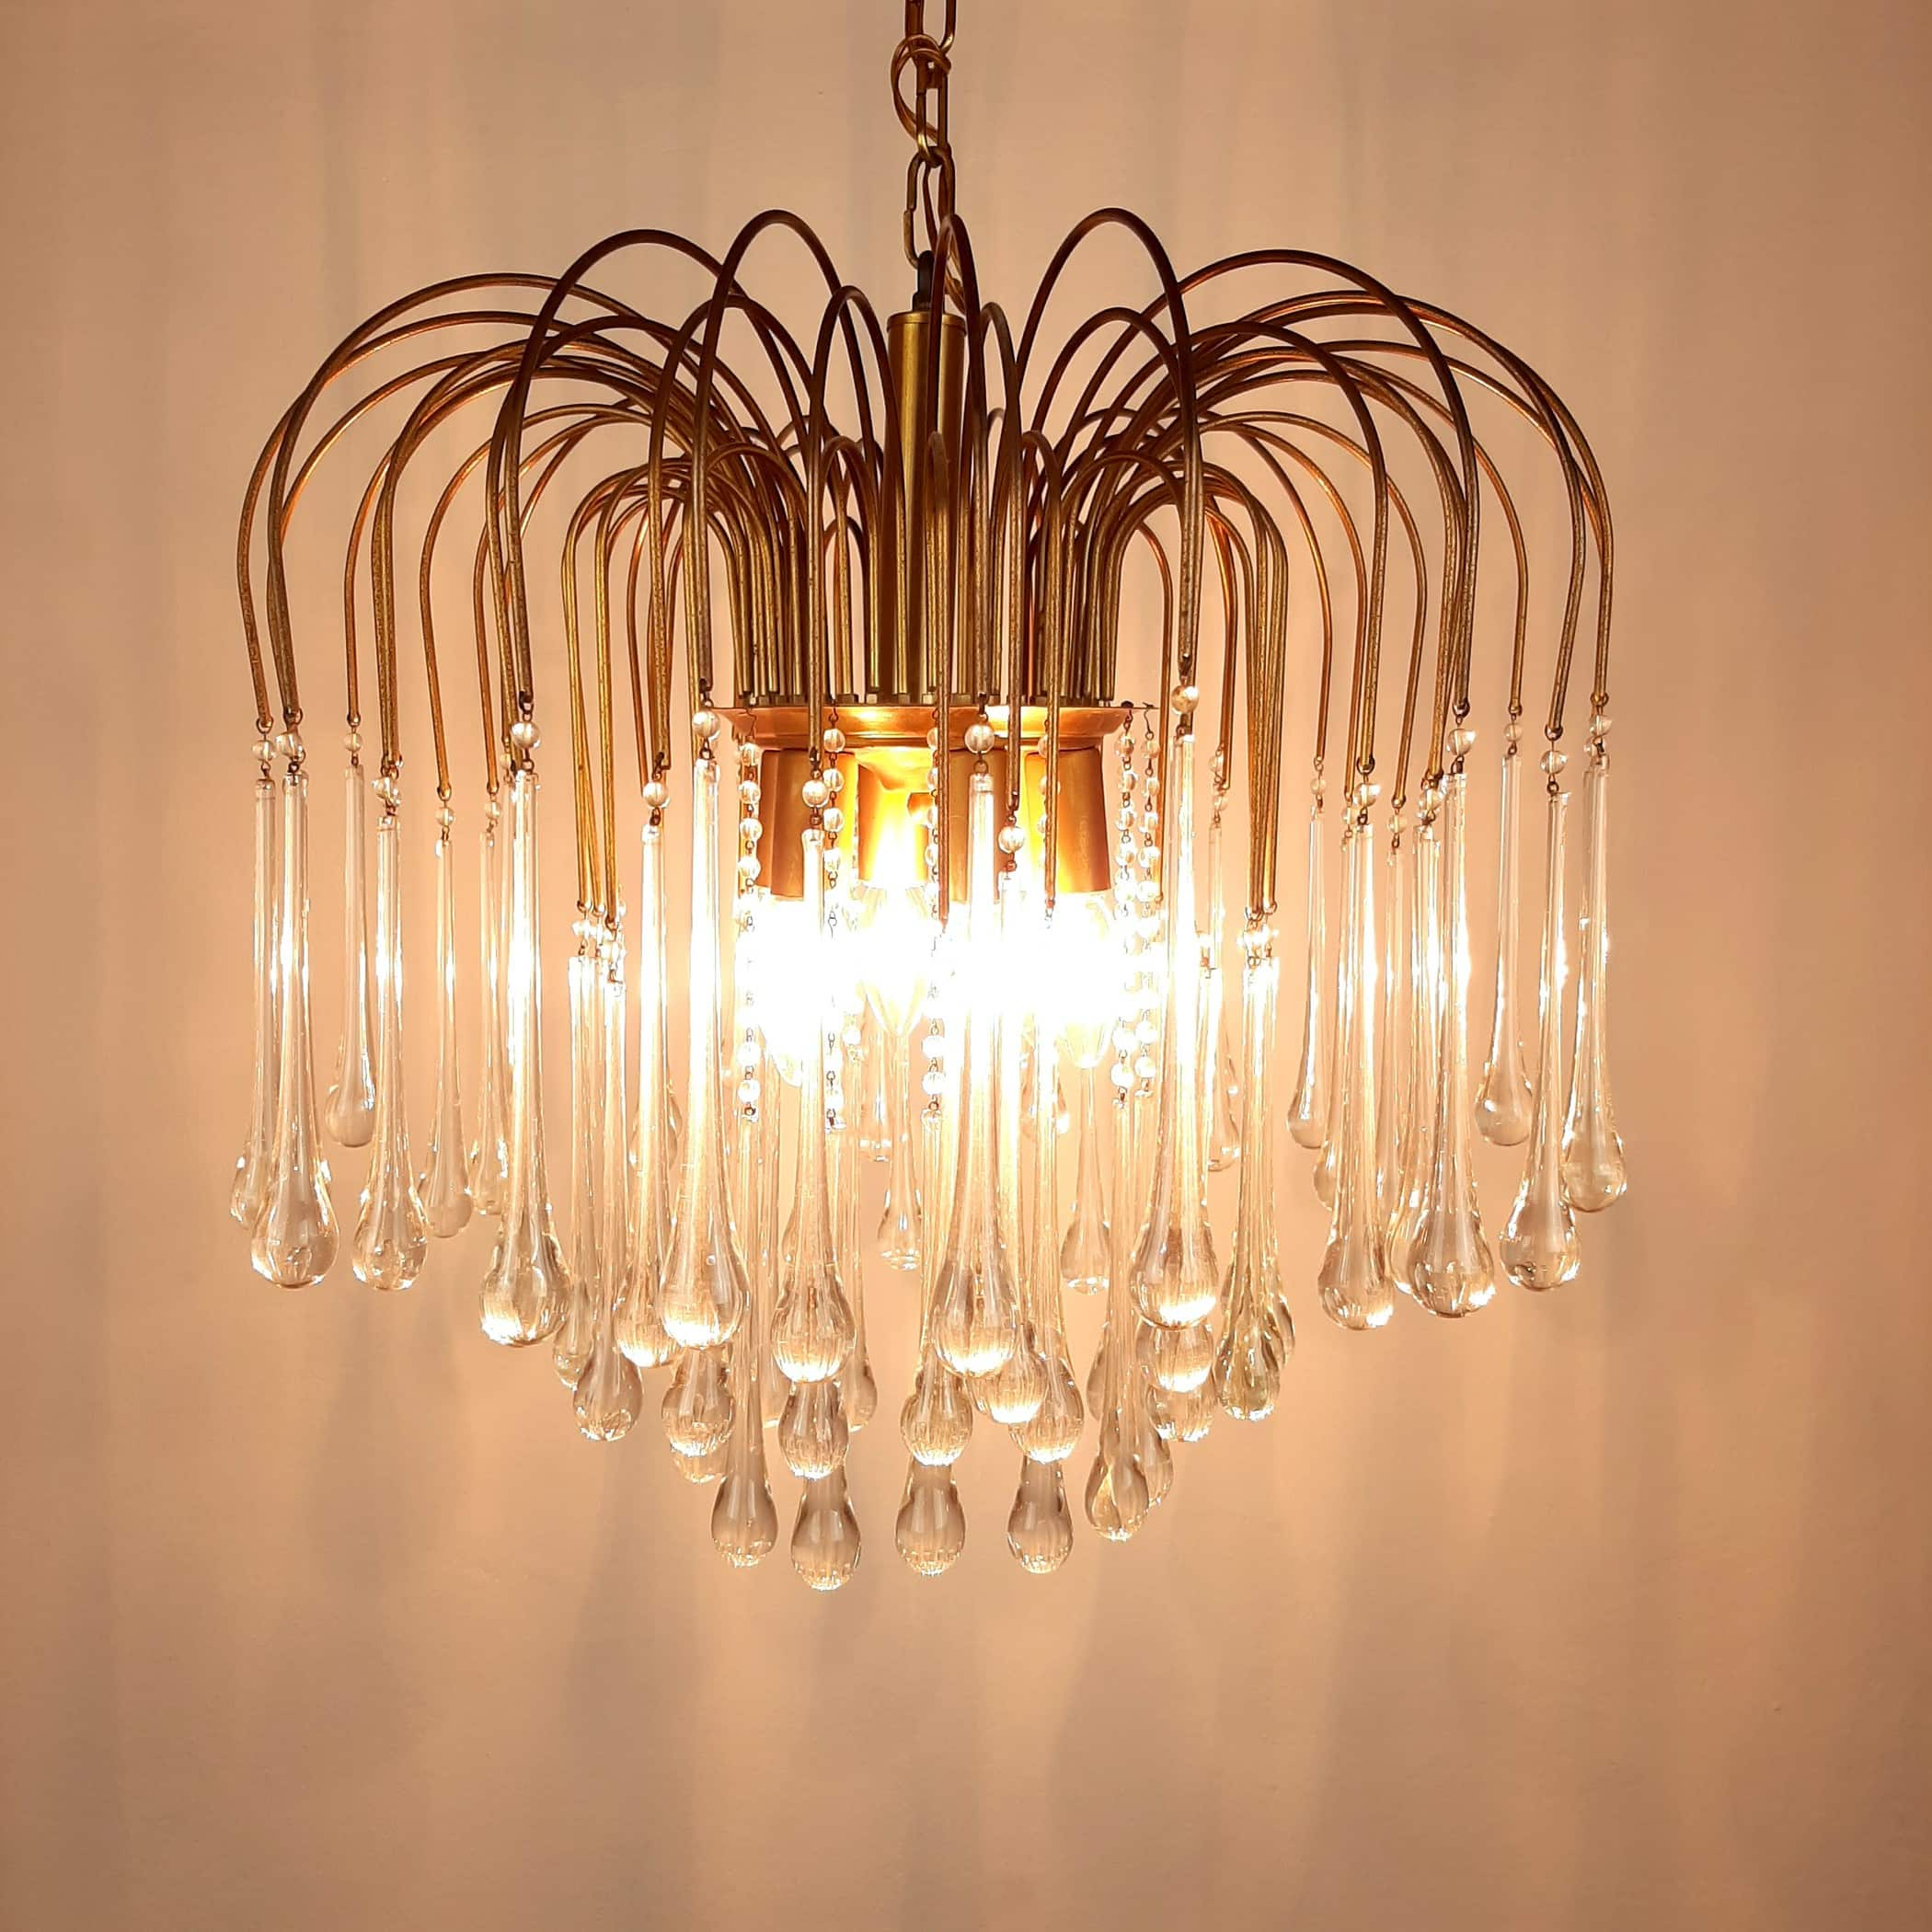 Vintage large Murano glass drops chandelier by Paolo Venini Italy '60s Clear Gold